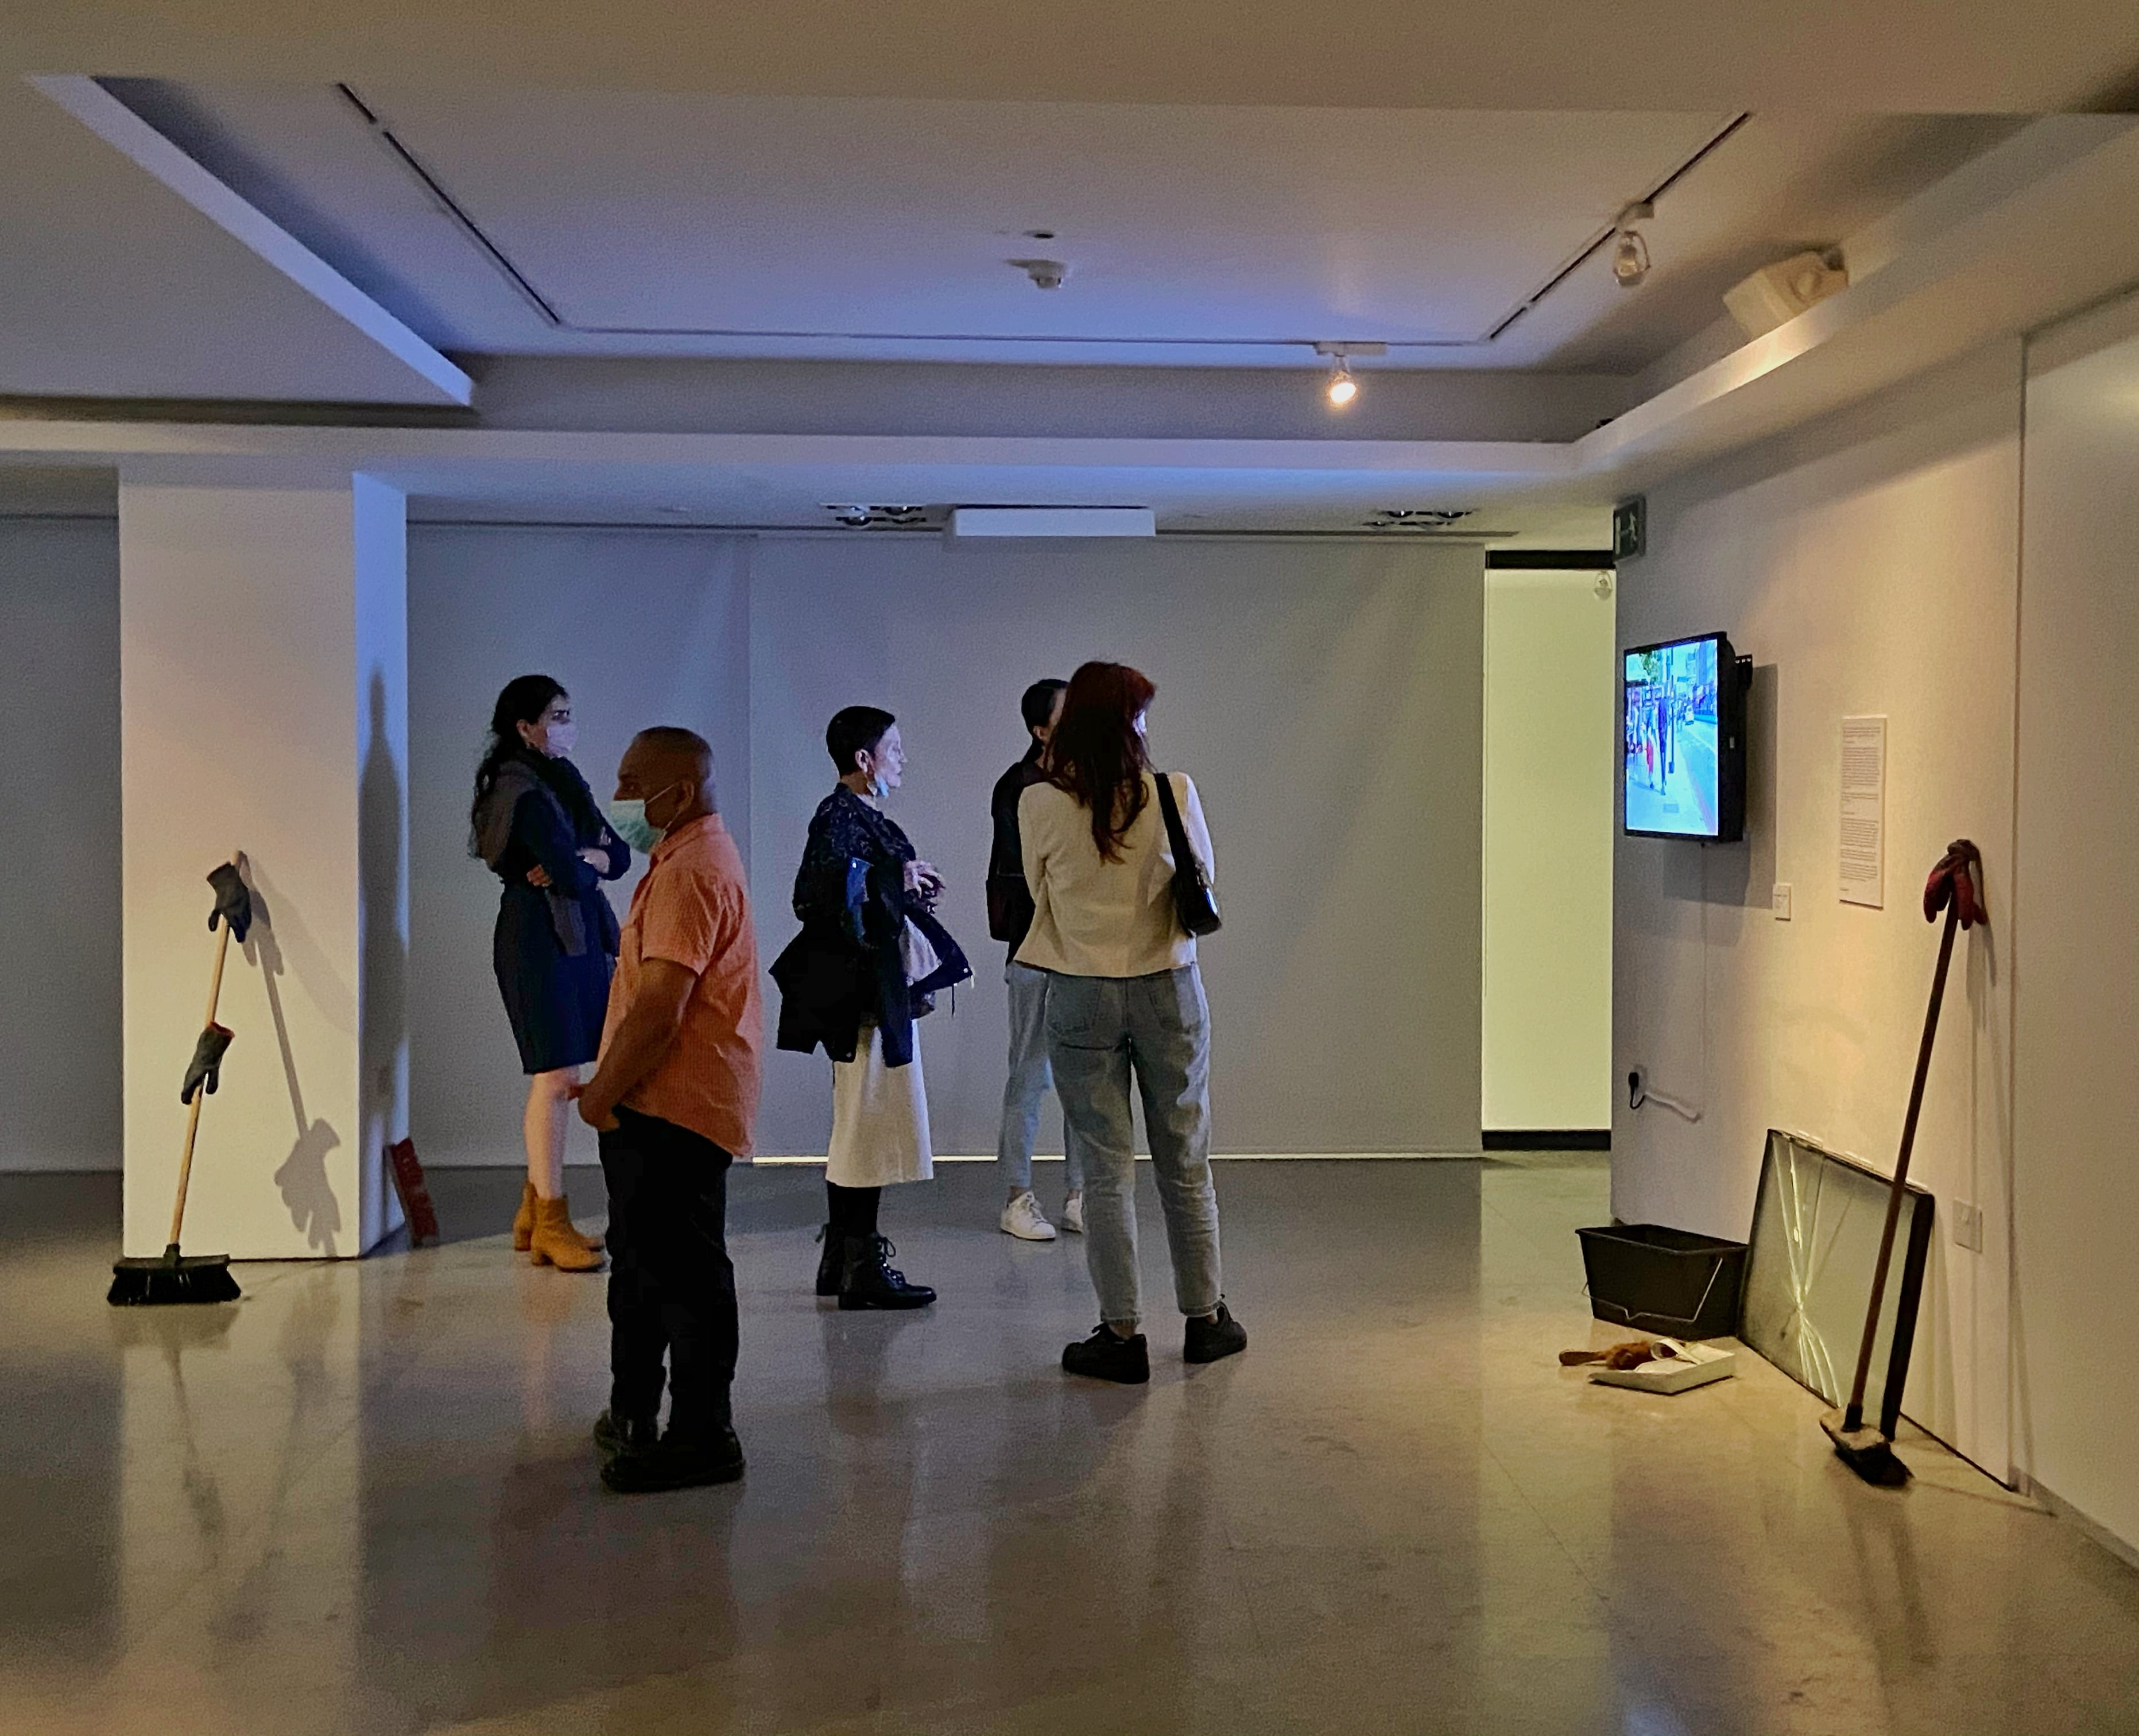 The exhibition serves as an artistic expression of solidarity with the victims of the Beirut Port Explosion, as well as a commemoration of the tragic incident that ended dozens of lives and devastated many others.